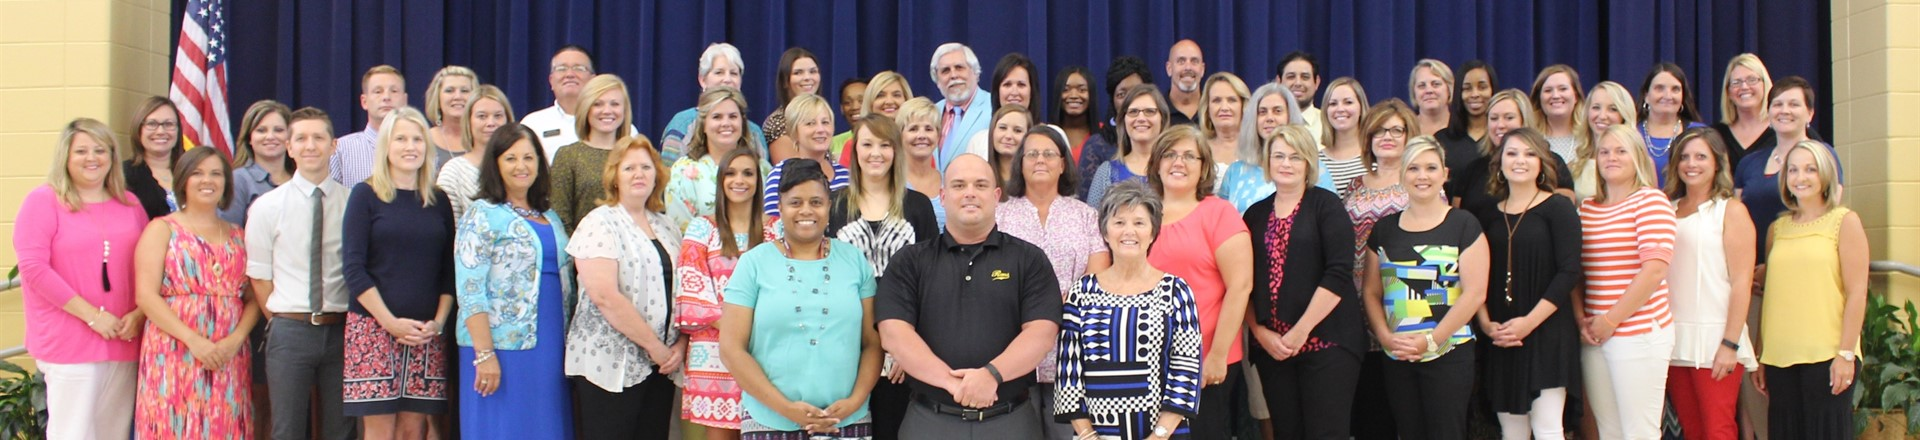 WCES Faculty and Staff 2016-2017